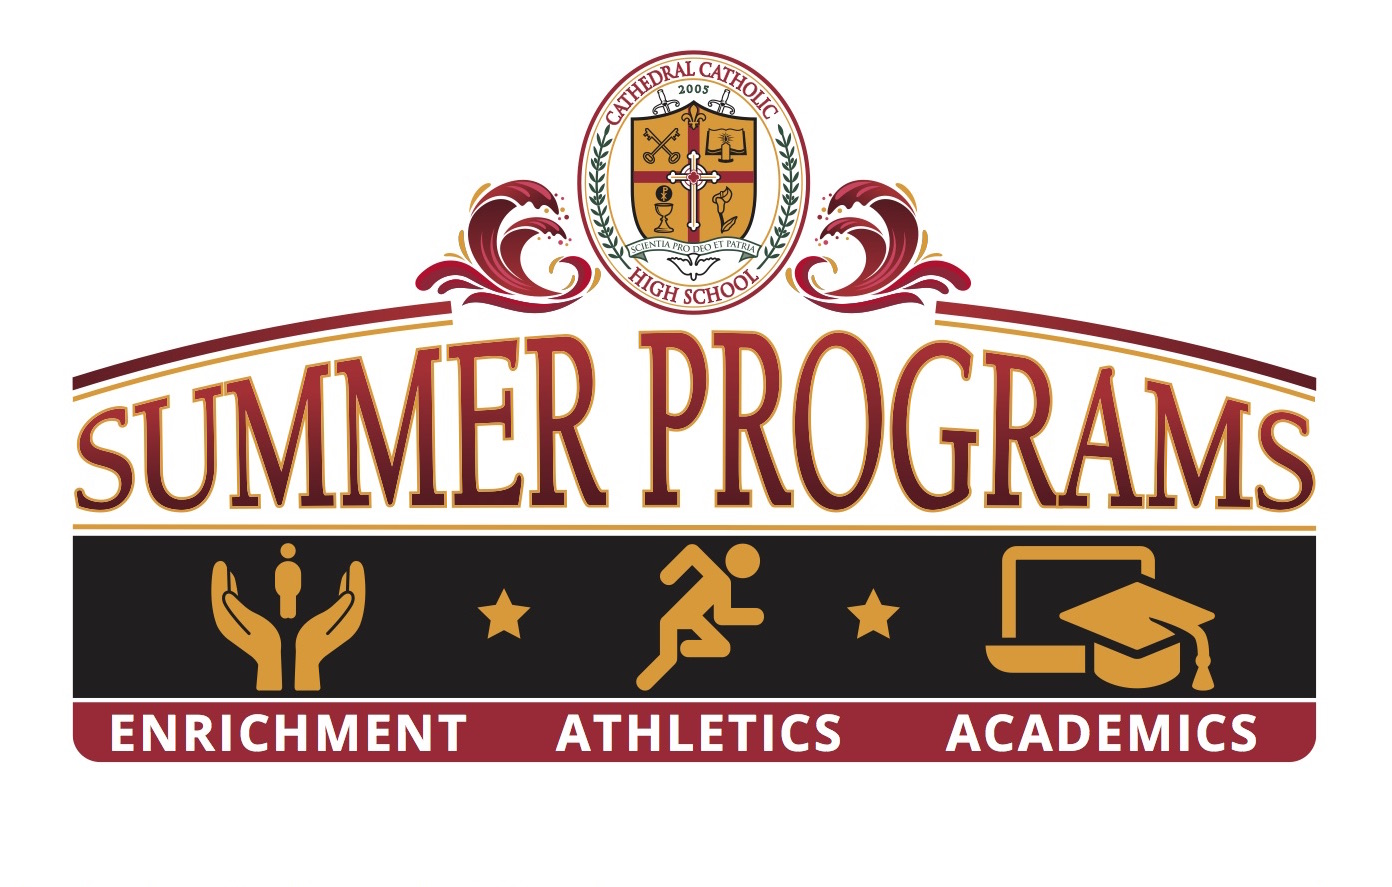 Cathedral Catholic High School Summer Program